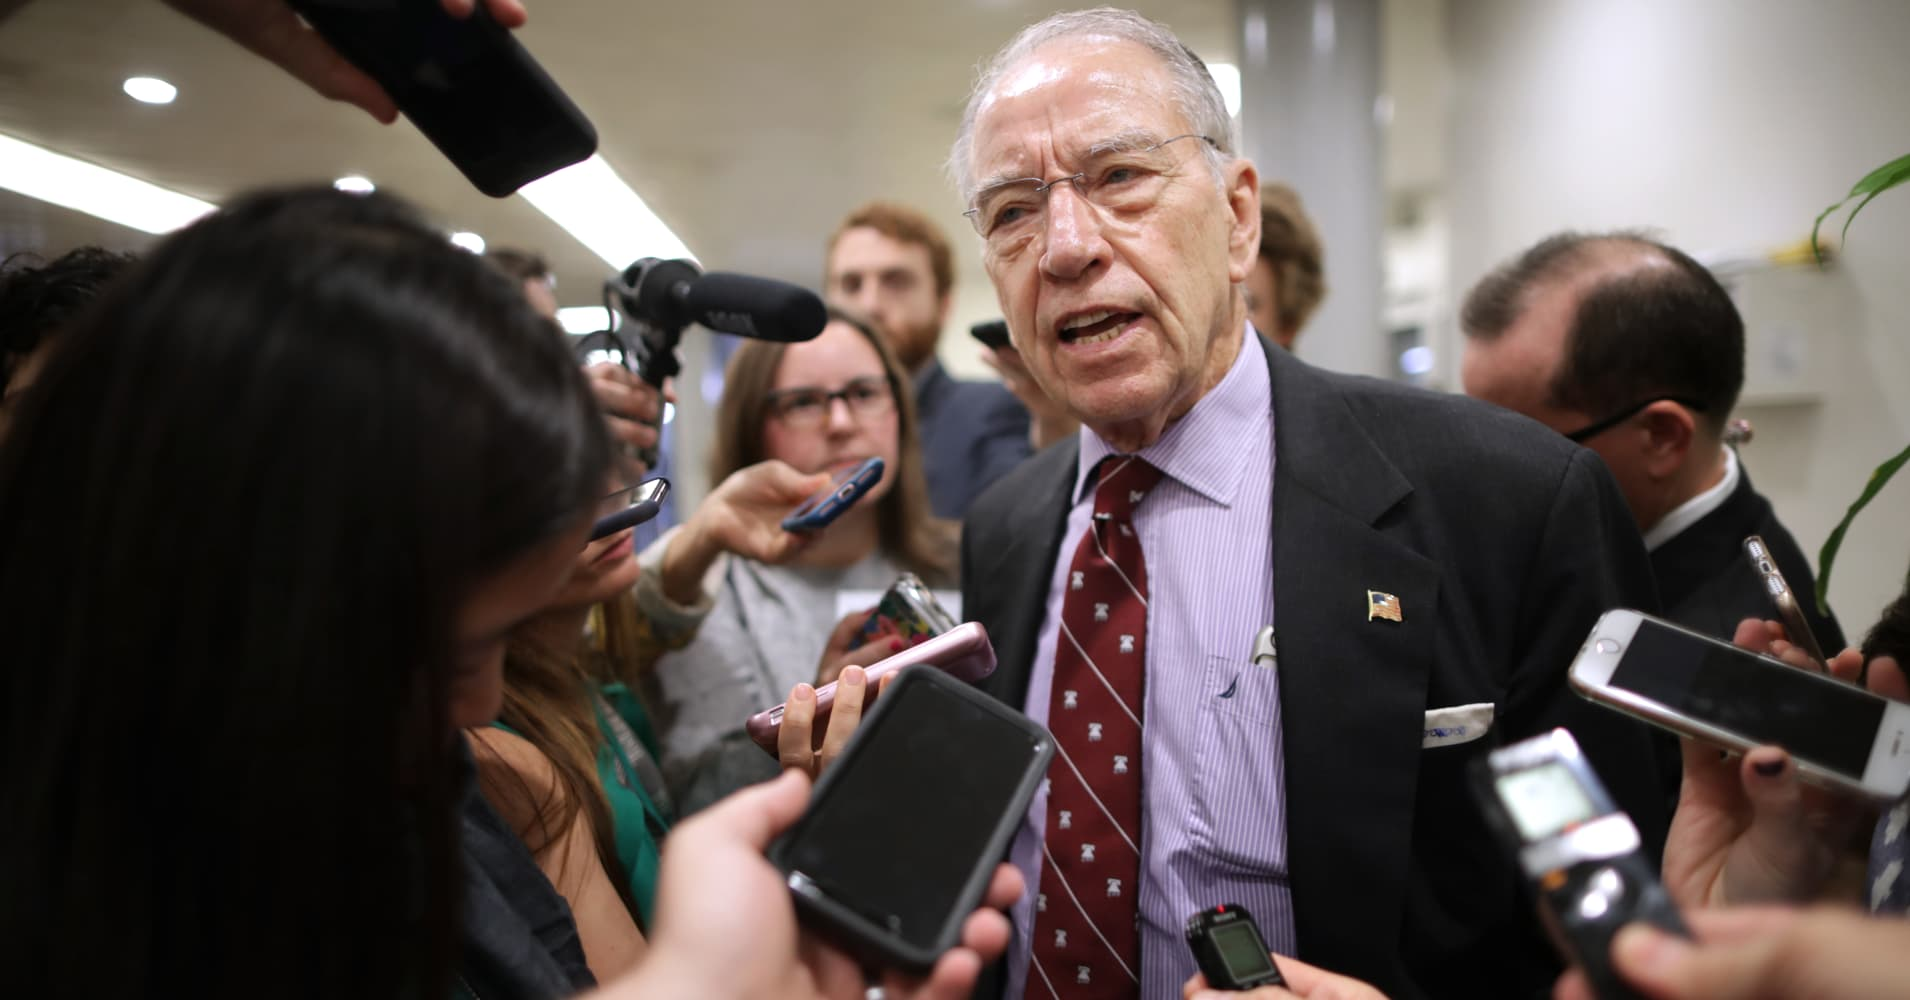 Republican Sen. Chuck Grassley doubts Obamacare will be ruled unconstitutional